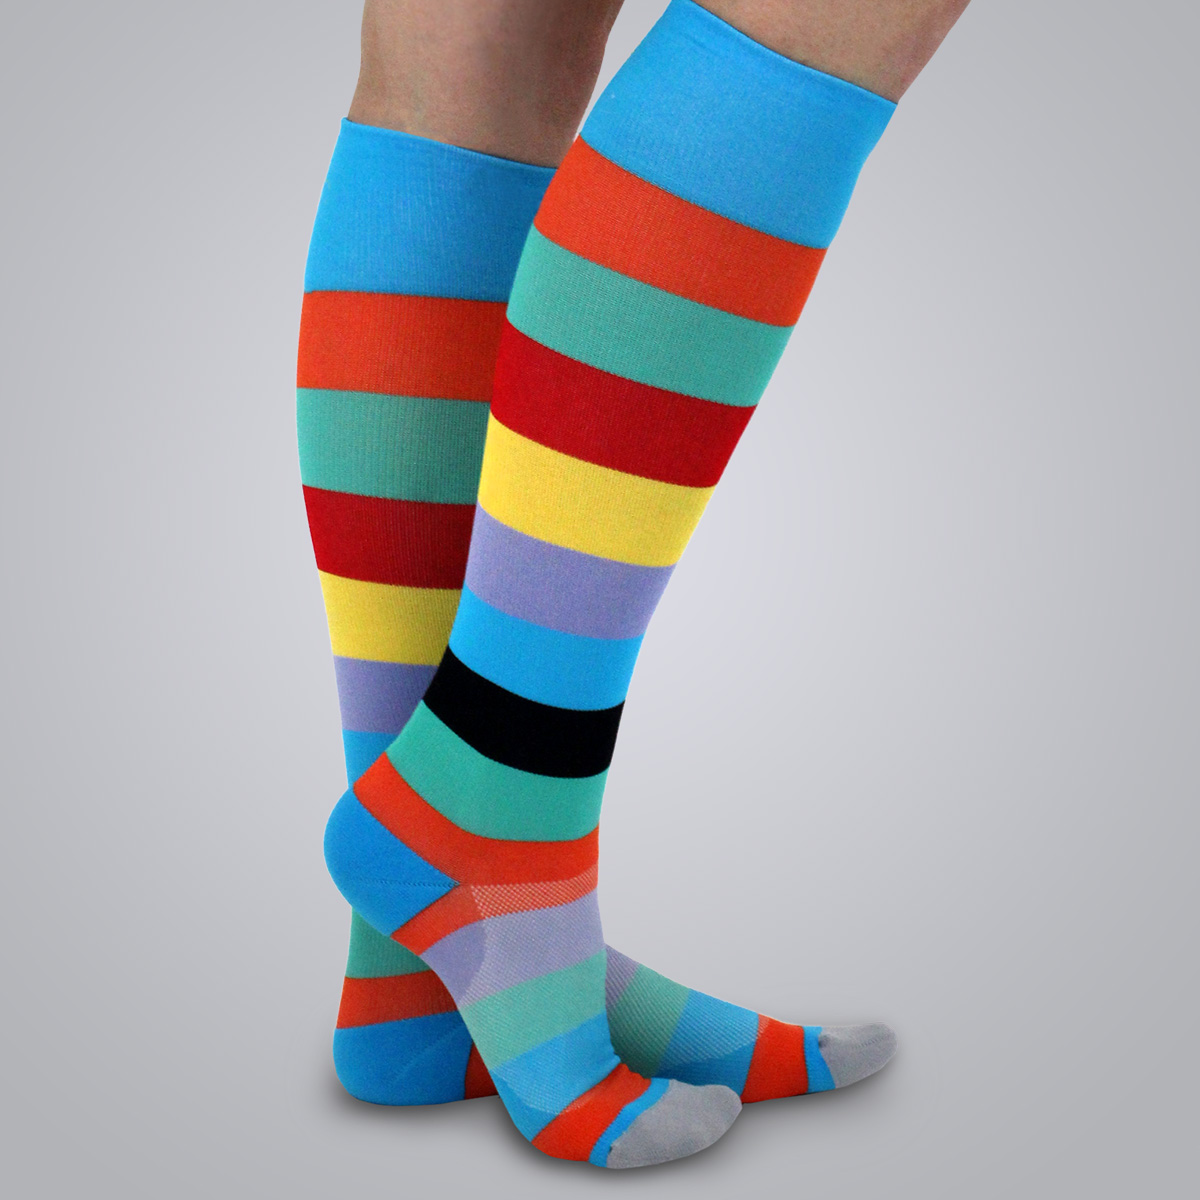 Beyond Compression Socks: A Nurse's Guide to Leg and Foot Self-Care